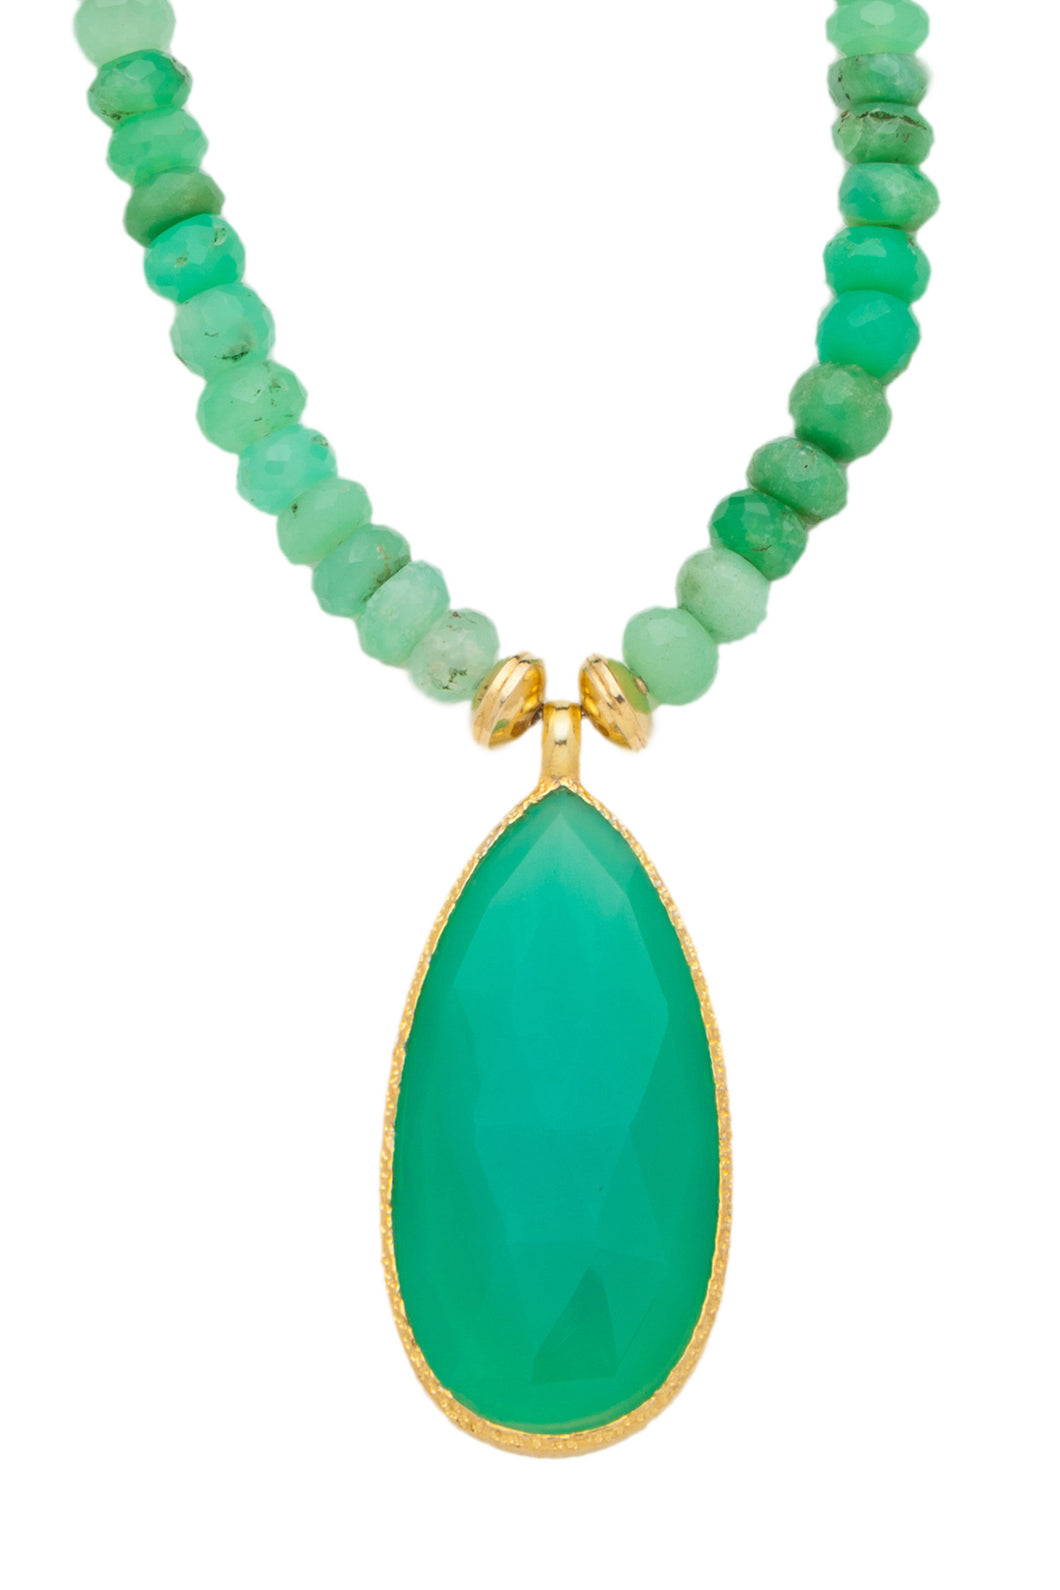 ONE OF A KIND Green Chrysoprase Necklace with Teardrop Pendant set in 24kt gold vermeil  NF291